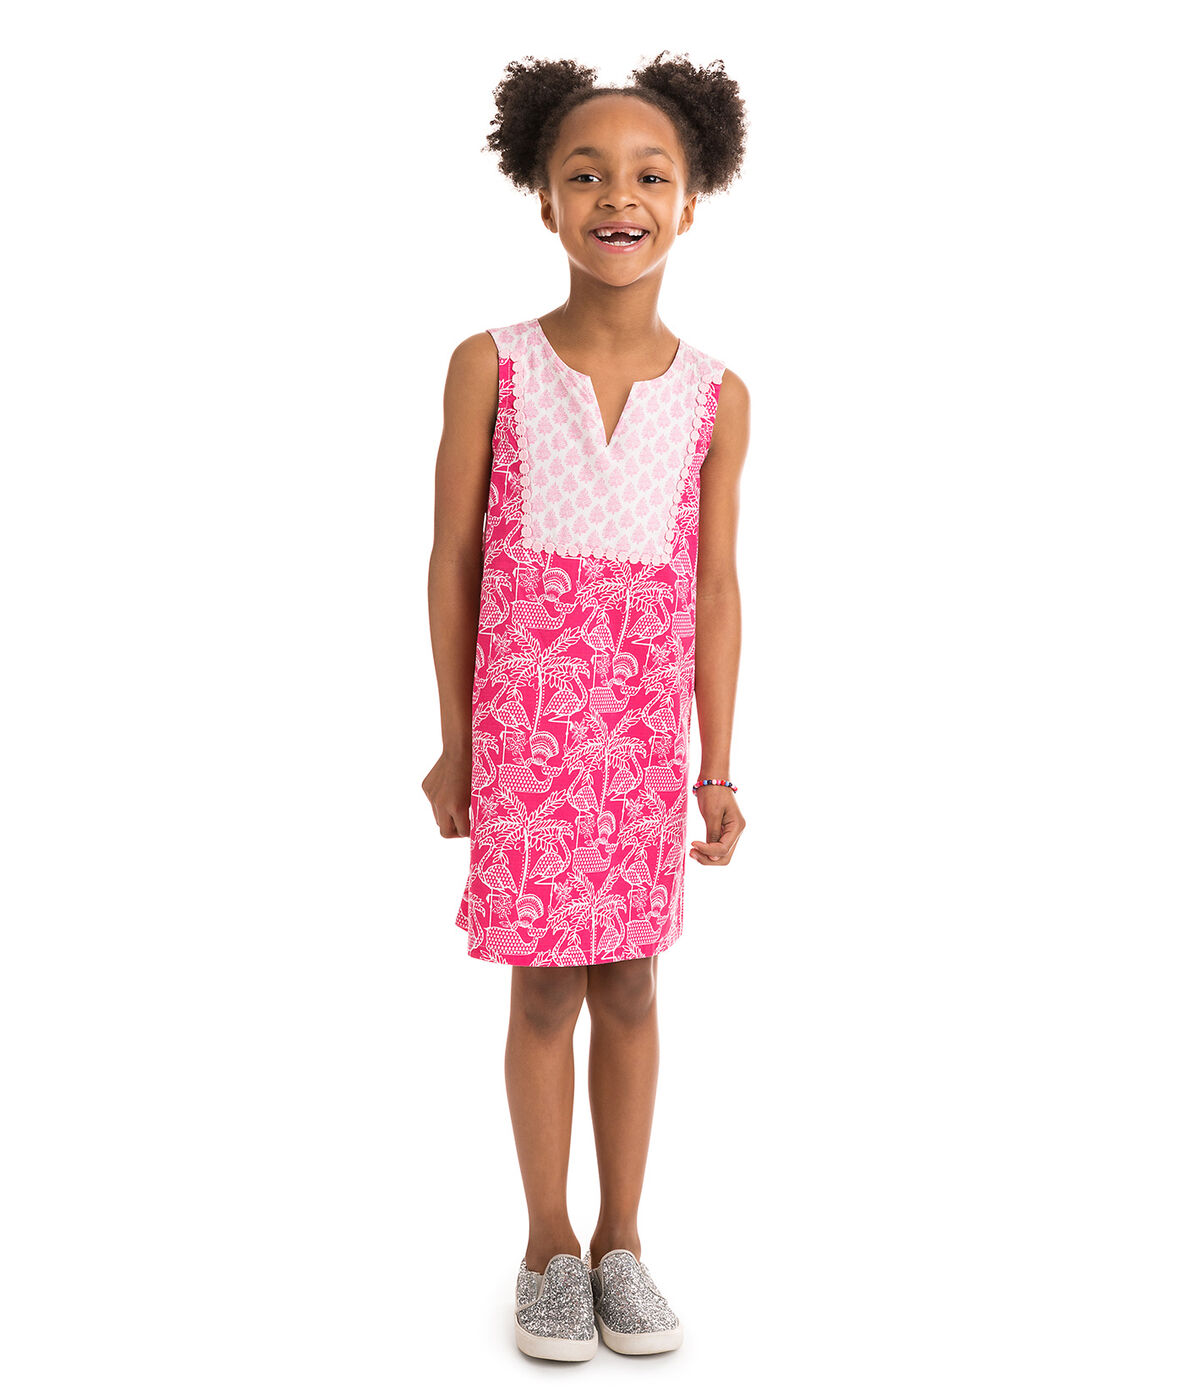 new arrivals girls clothing pick up the latest dress skirt or